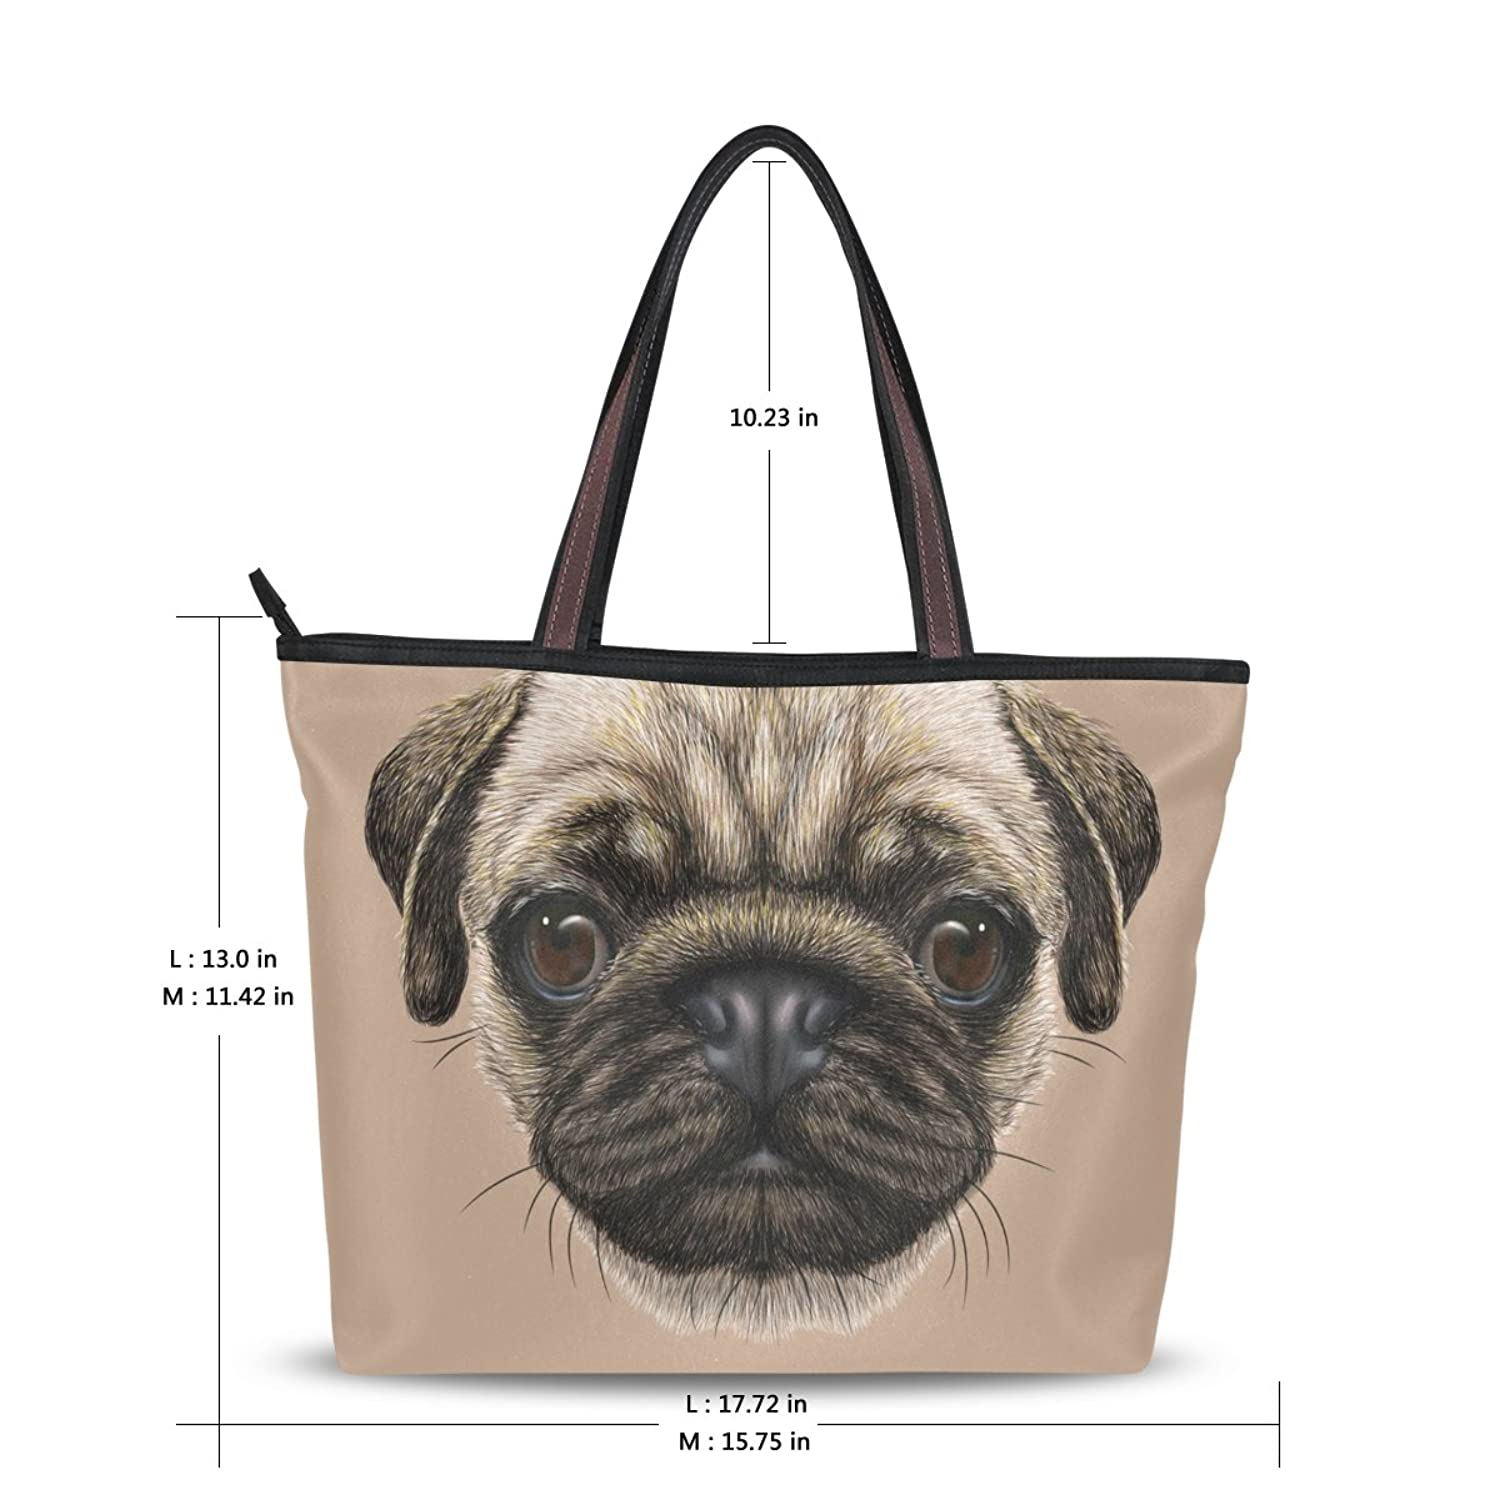 Women's School Large Handbag Shoulder Bags,Cute Pug Dog Head,Tote Bag